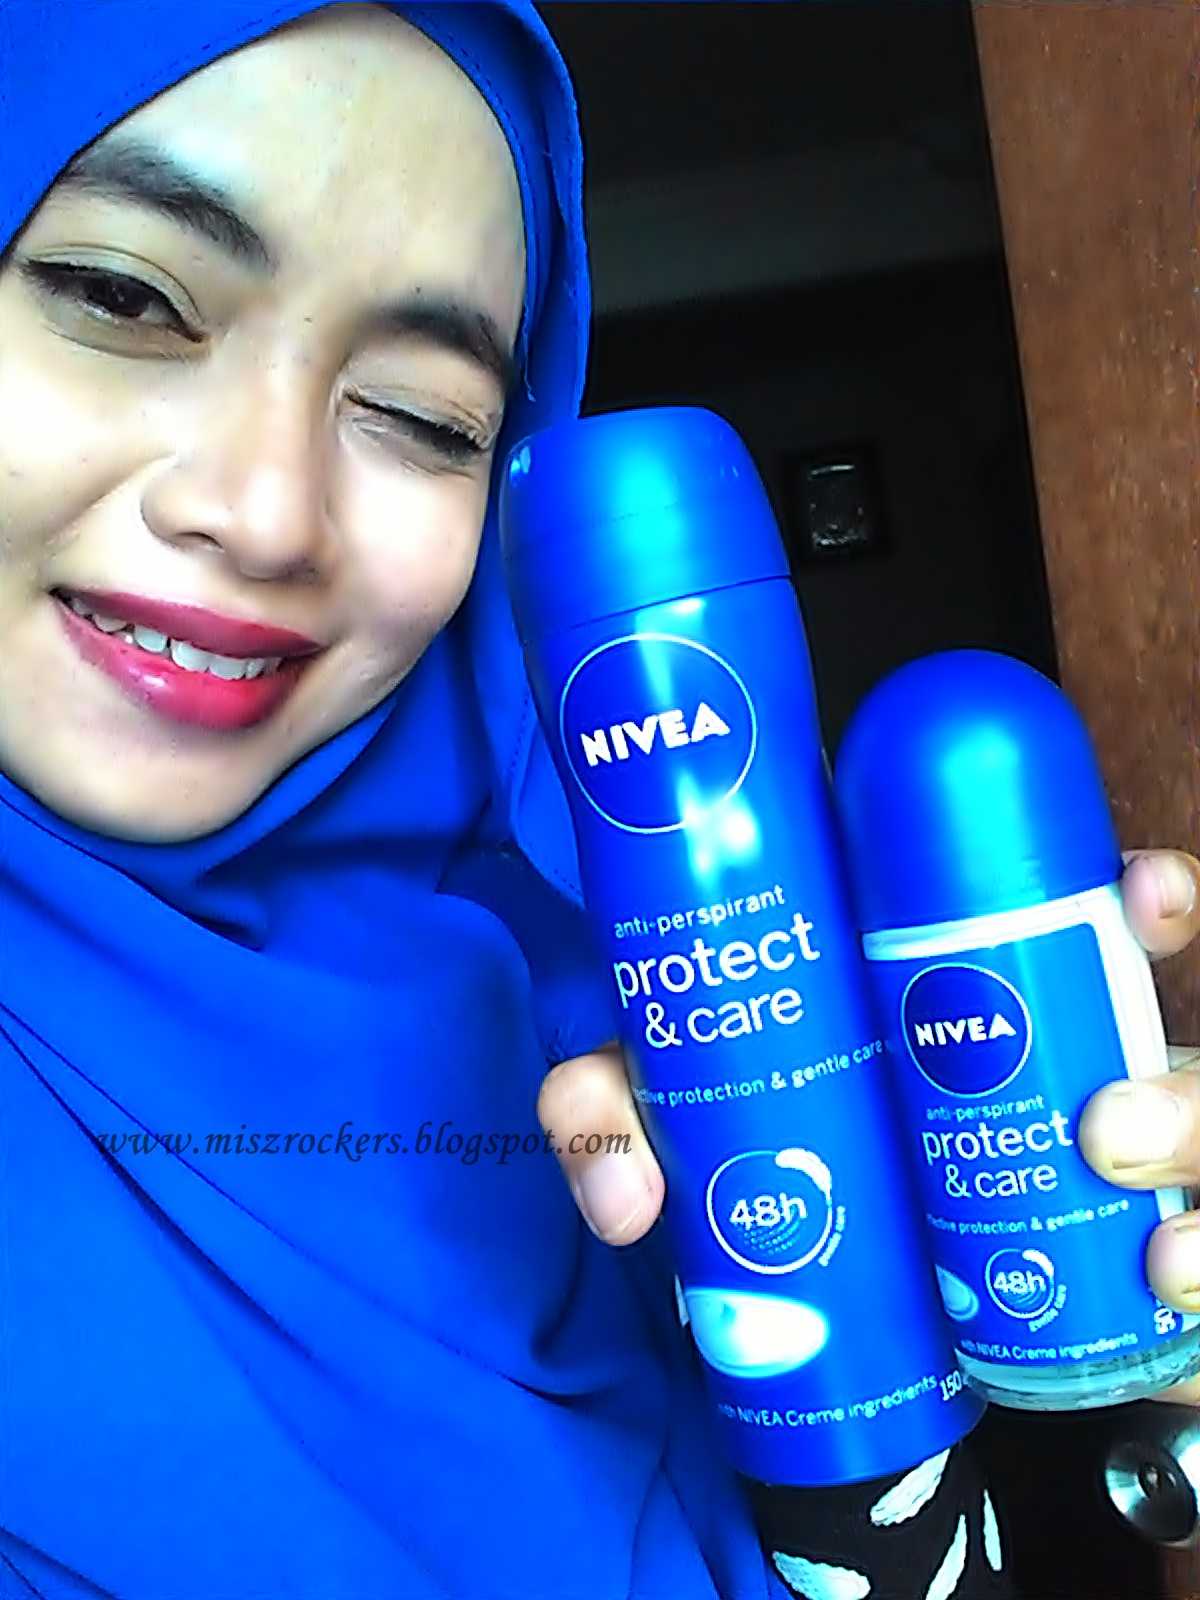 DEODORAN NIVEA PROTECT & CARE